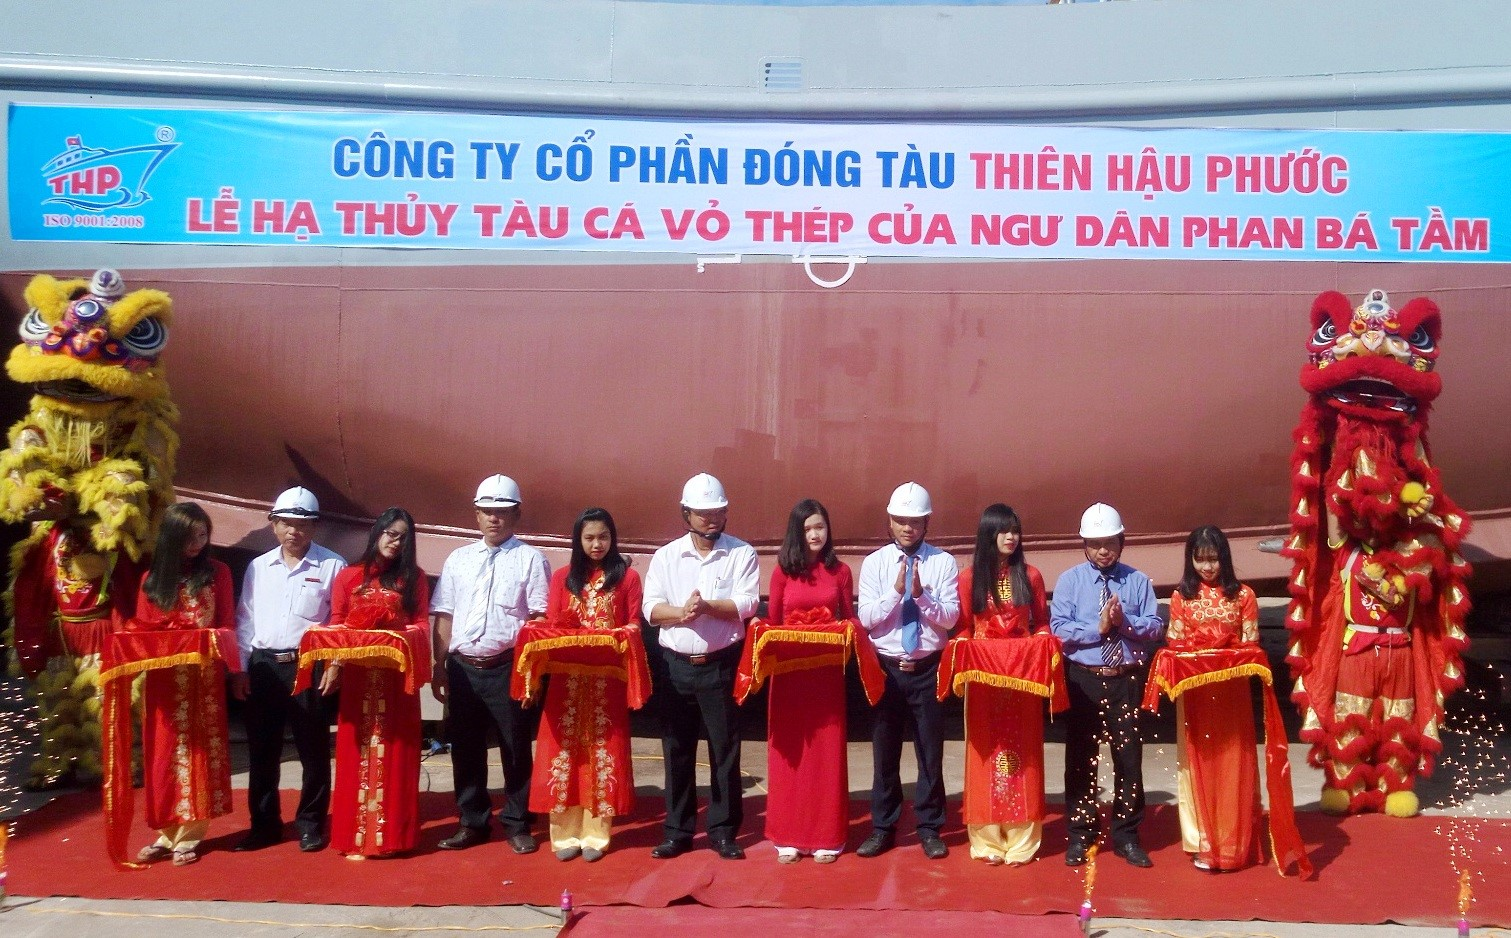 Launching ceremony of steel-clad boat QNa-91697 TS (Photo: Anh Quan)